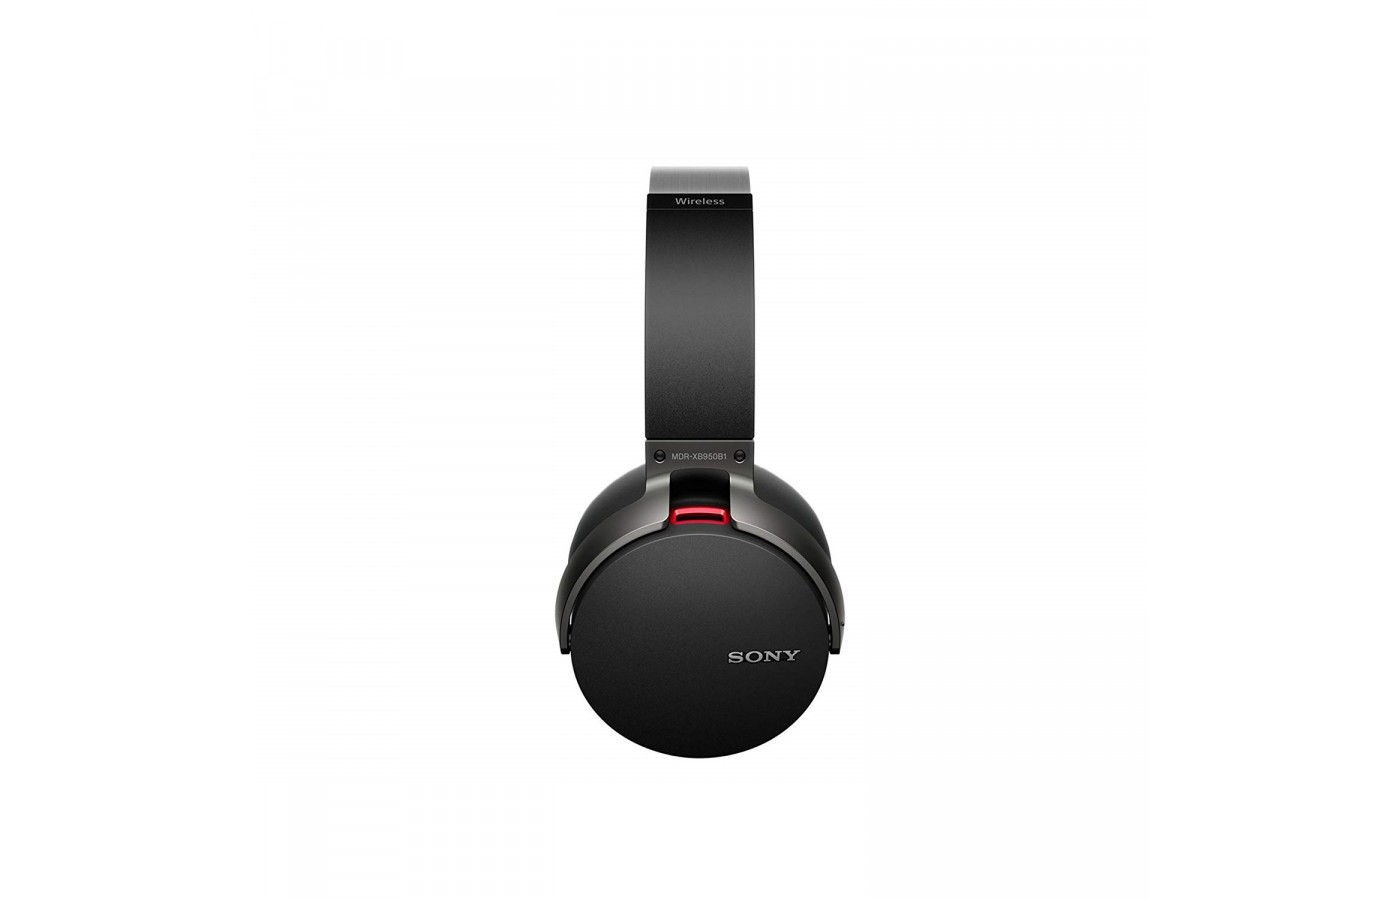 Sony XB950B1 offers a higher quality sound with bluetooth connectivity, including bass.